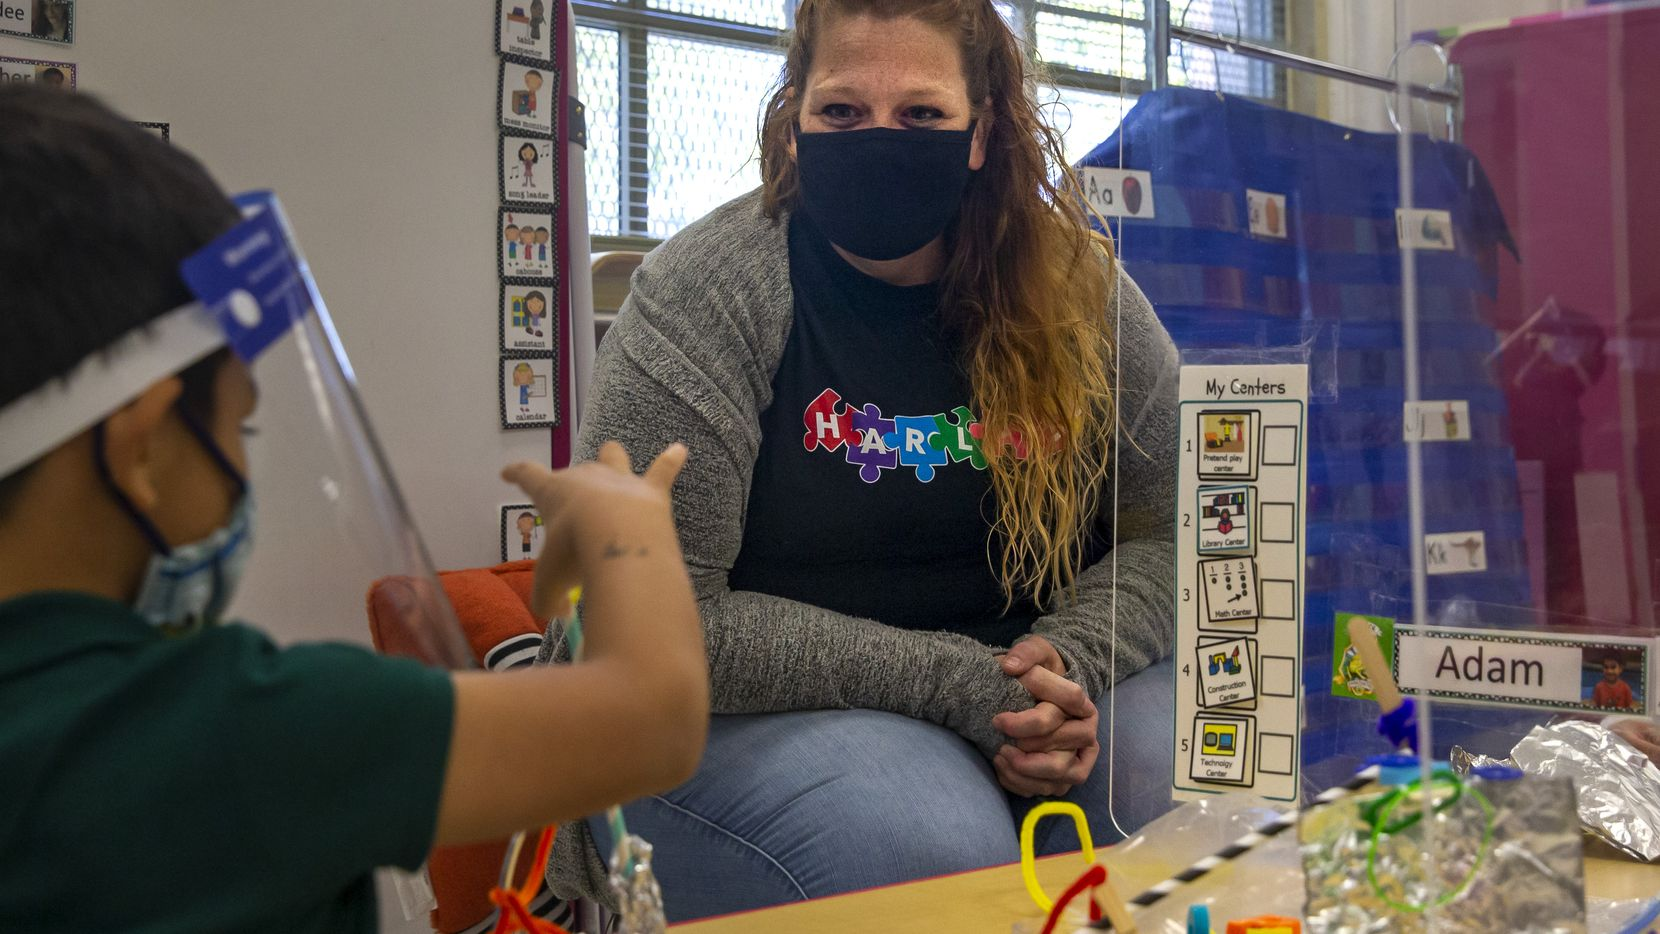 Pre-K 4 teacher Annie Pardee cheers on student Adam Renteria as he and his classmates work on an activity behind sneeze guards installed on their desks at N.W. Harllee Early Childhood Center in the Oak Cliff neighborhood of Dallas on Friday, Oct. 2, 2020. Dallas ISD's Pre-K numbers are down by the thousands to start the school year. (Lynda M. González/The Dallas Morning News)